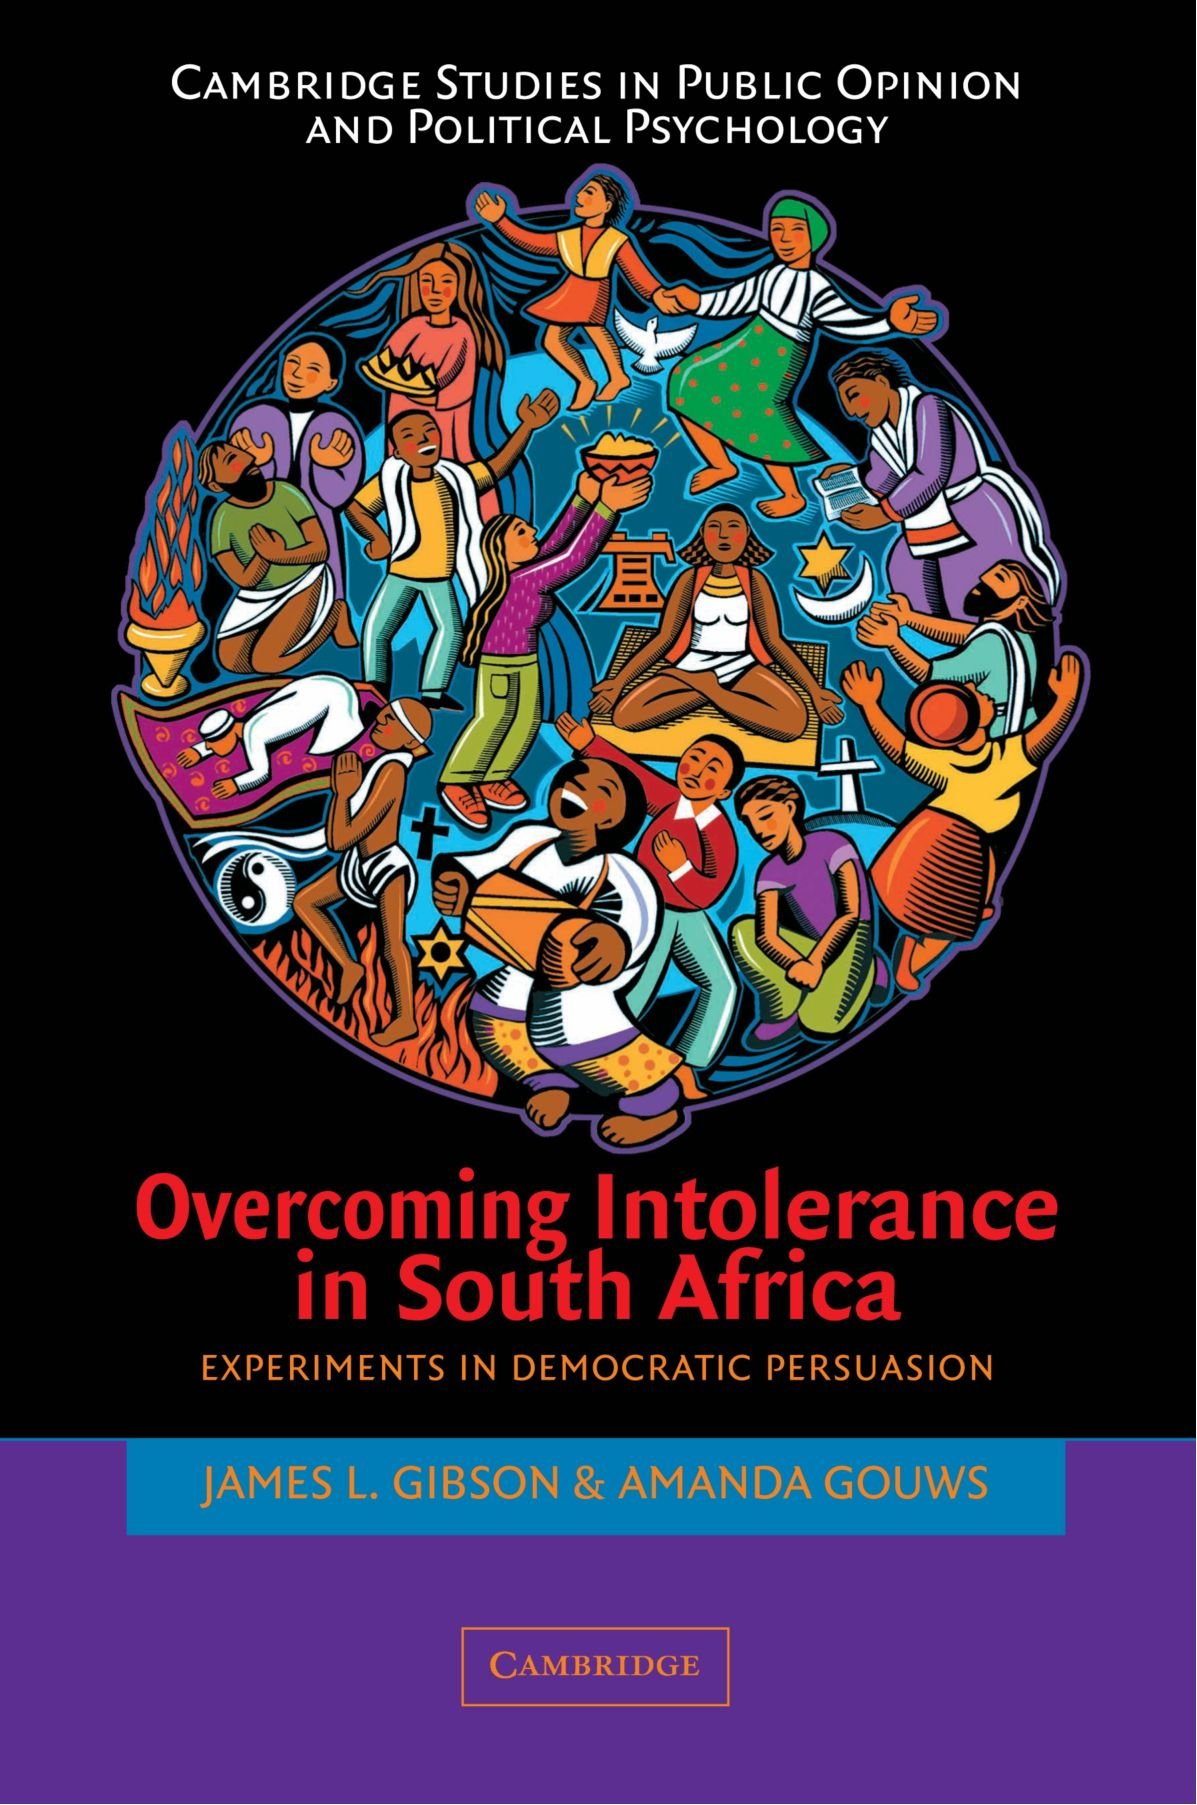 Overcoming Intolerance in South Africa: Experiments in Democratic Persuasion (Cambridge Studies in Public Opinion and Political Psychology) PDF